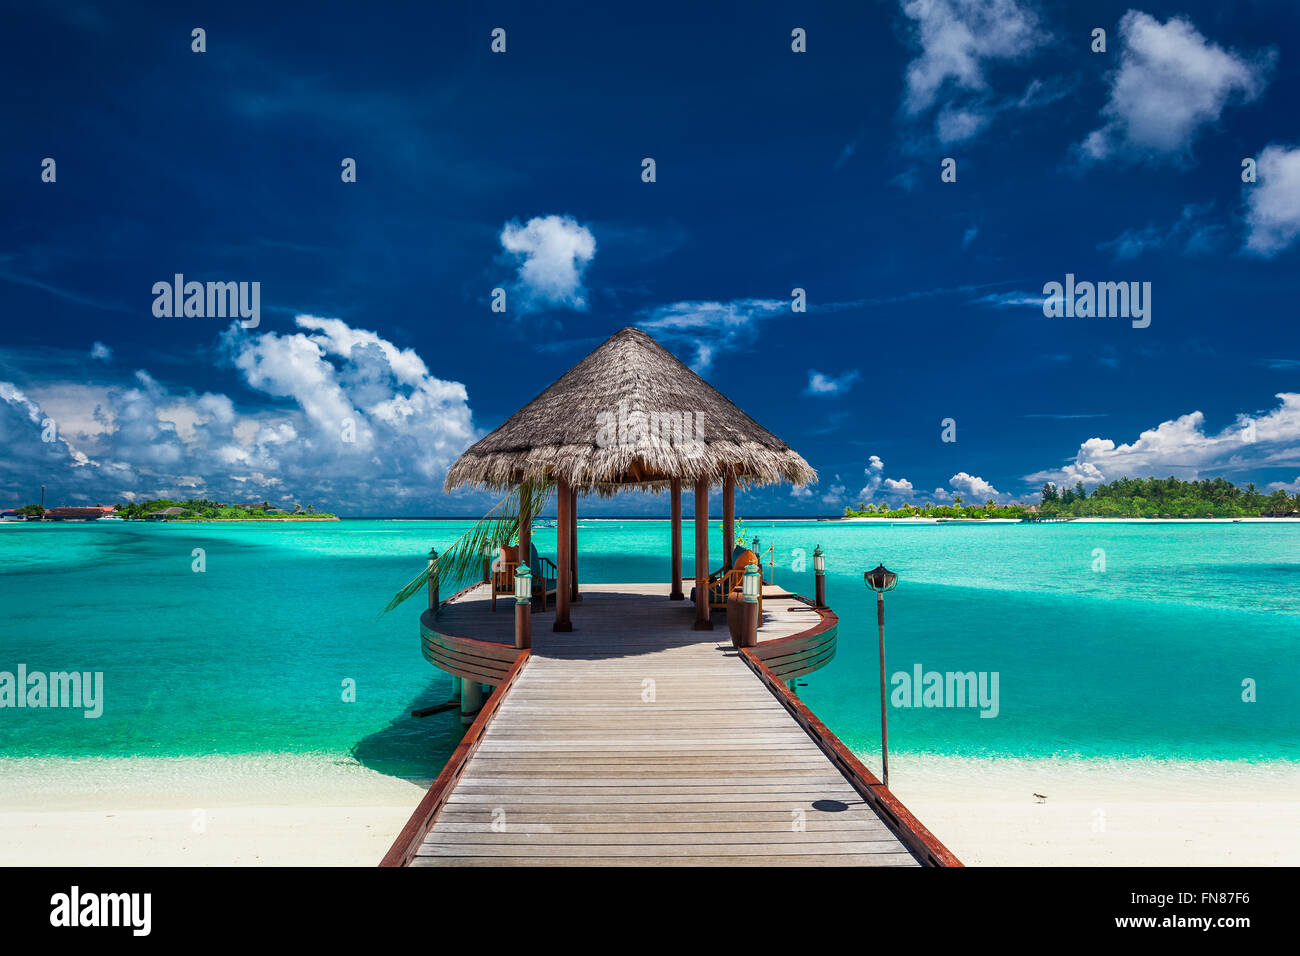 Traditional boat jetty in a luxury resort of Maldives, Indian Ocean - Stock Image